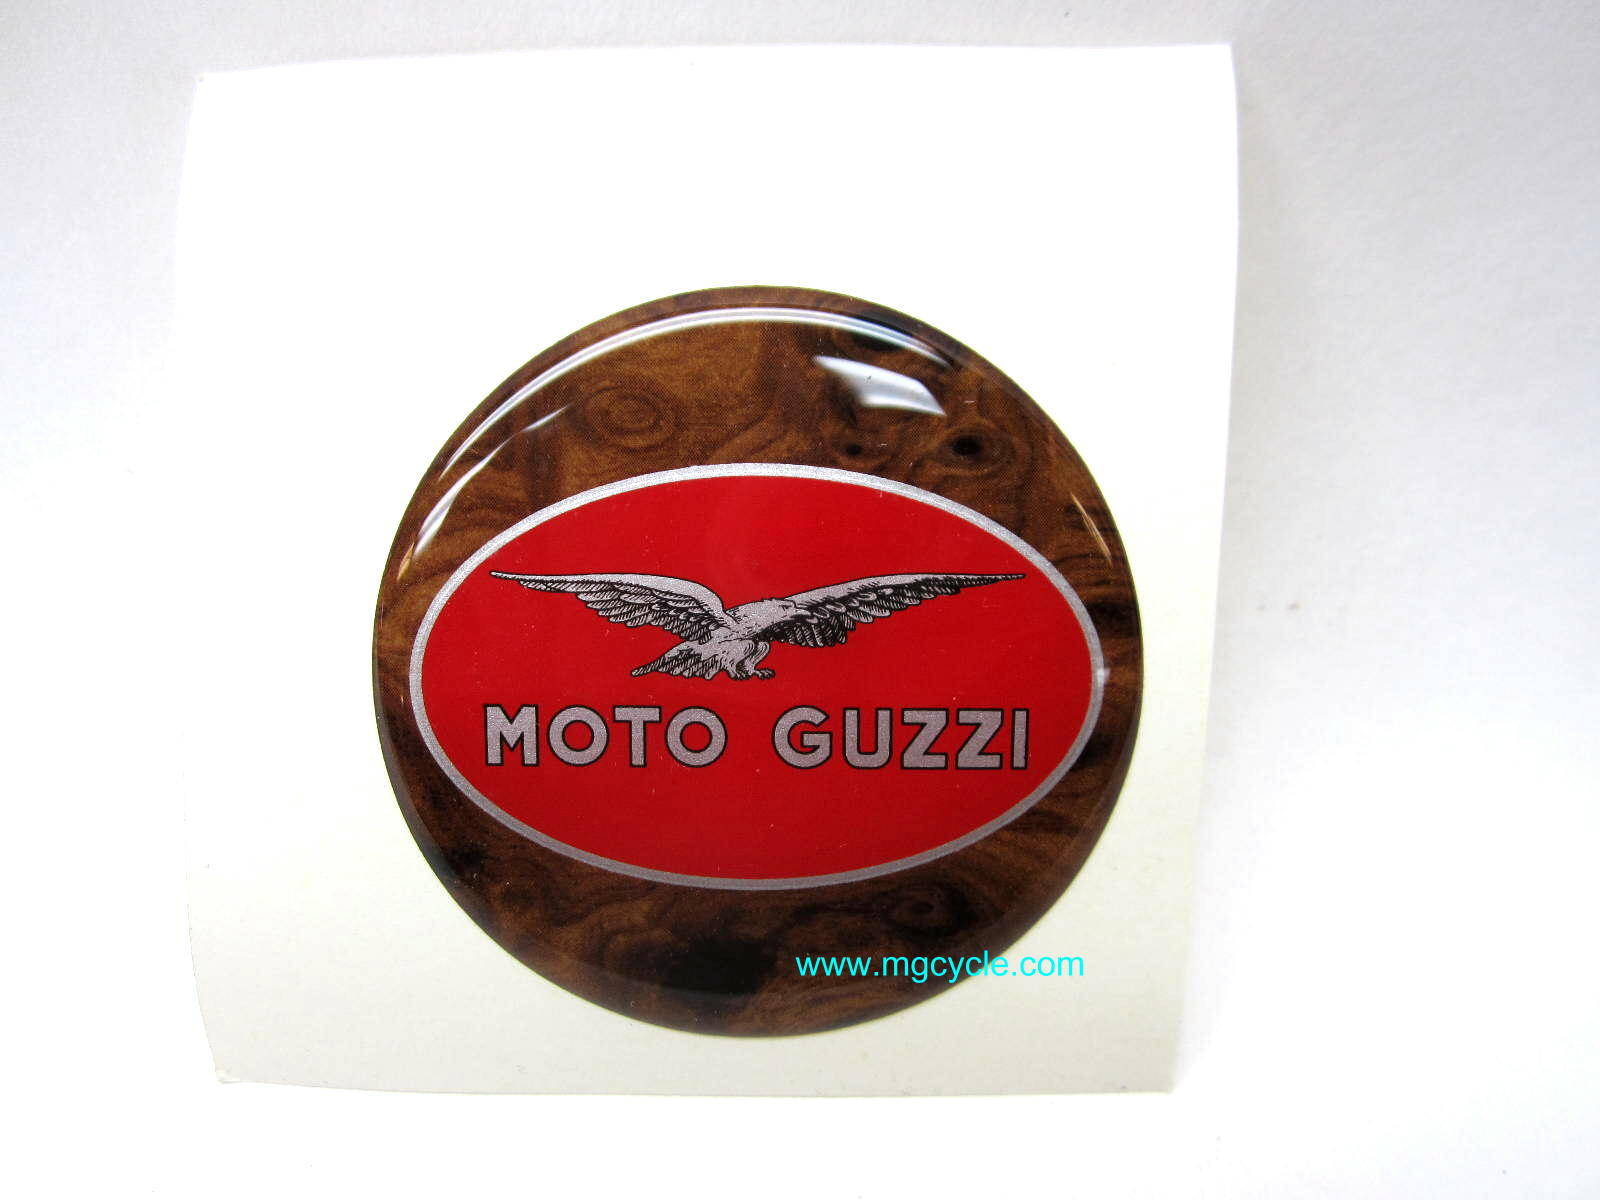 3D decal Moto Guzzi round 60mm diameter fits Hepco Becker